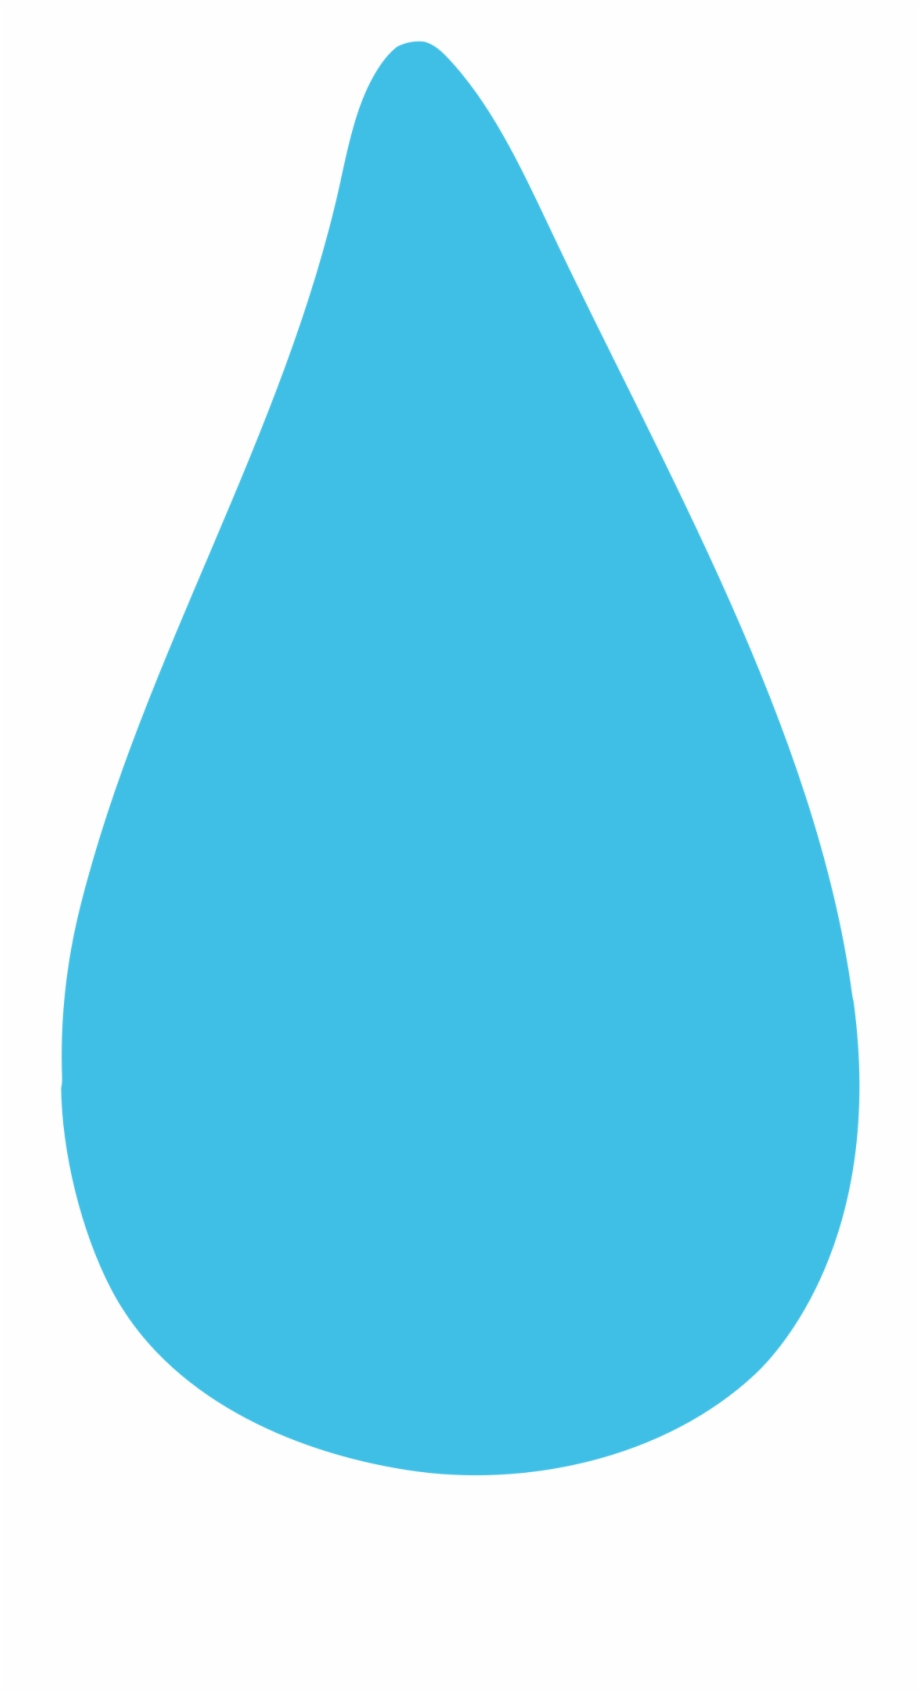 Sweat Drop Png.